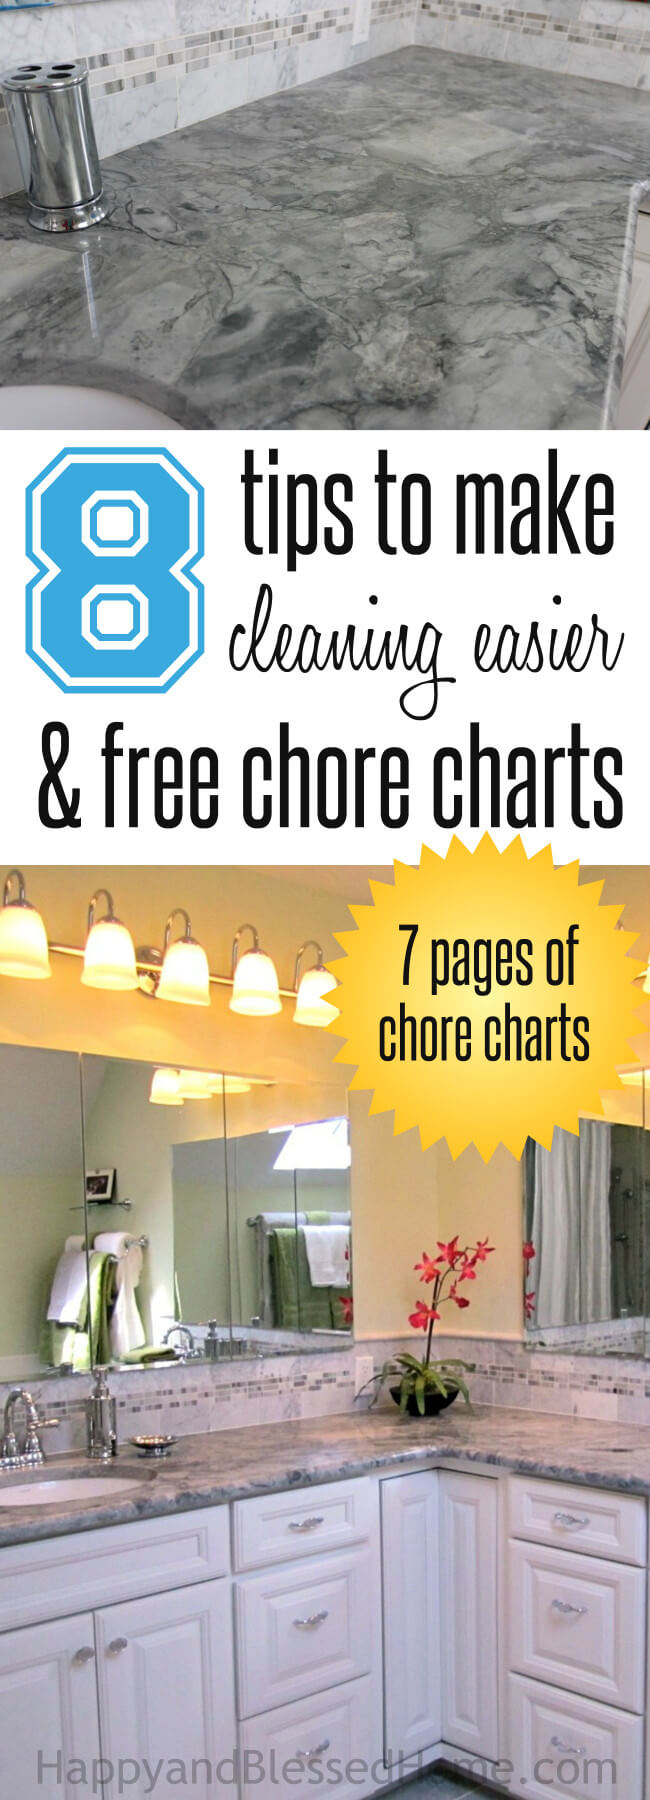 8 Tips to make cleaning easier plus 7 Pages of Chore Charts for Kids - I love idea #7